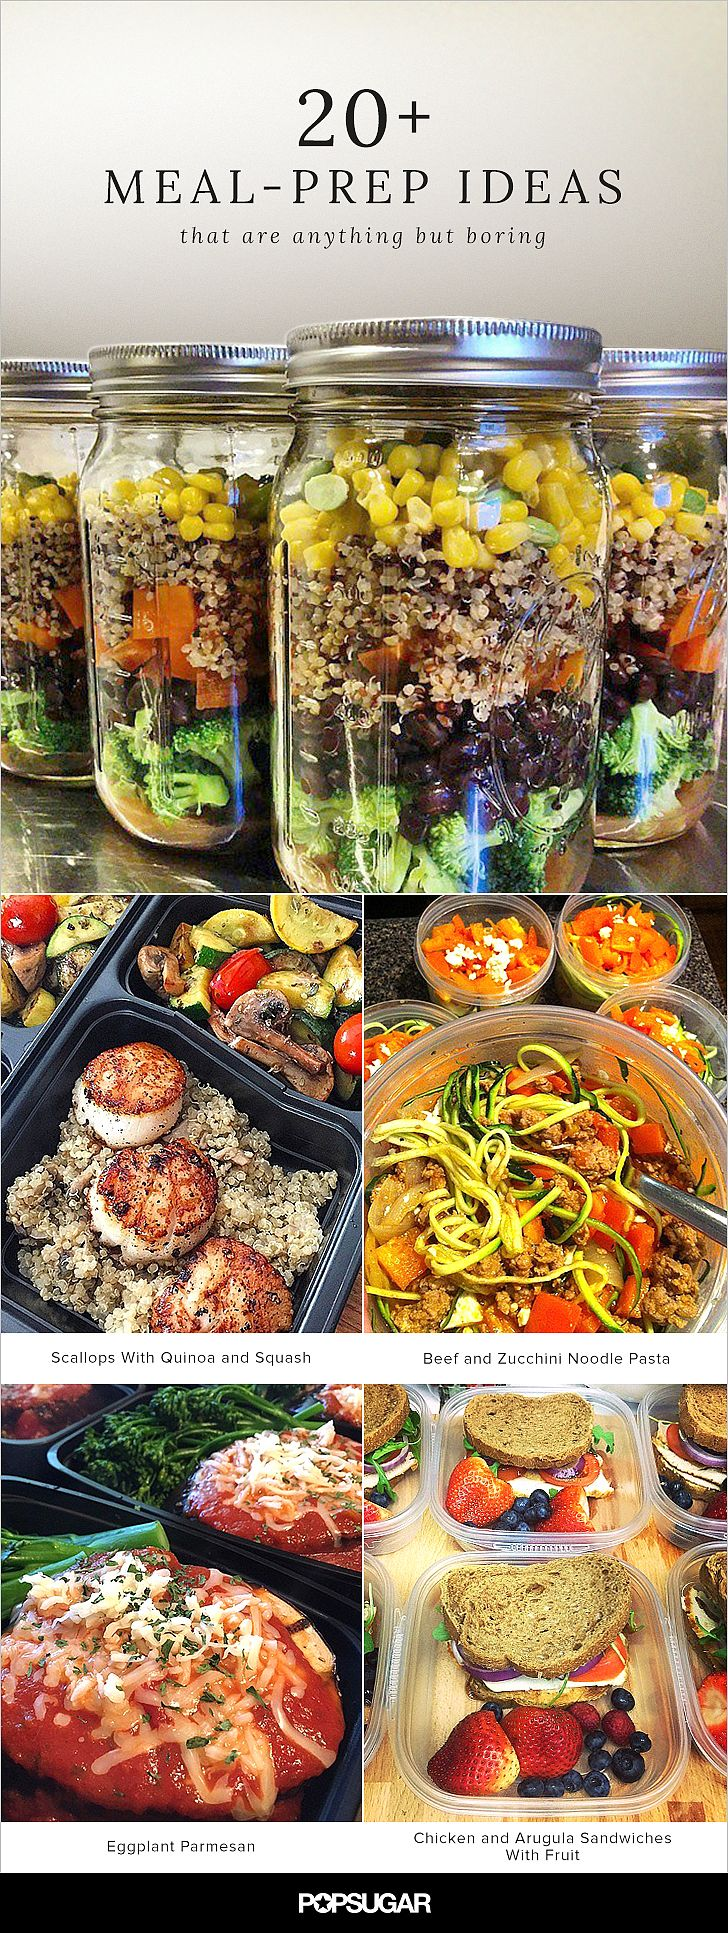 21 #MealPrep Ideas That Are Anything but Boring...some good stuff in here